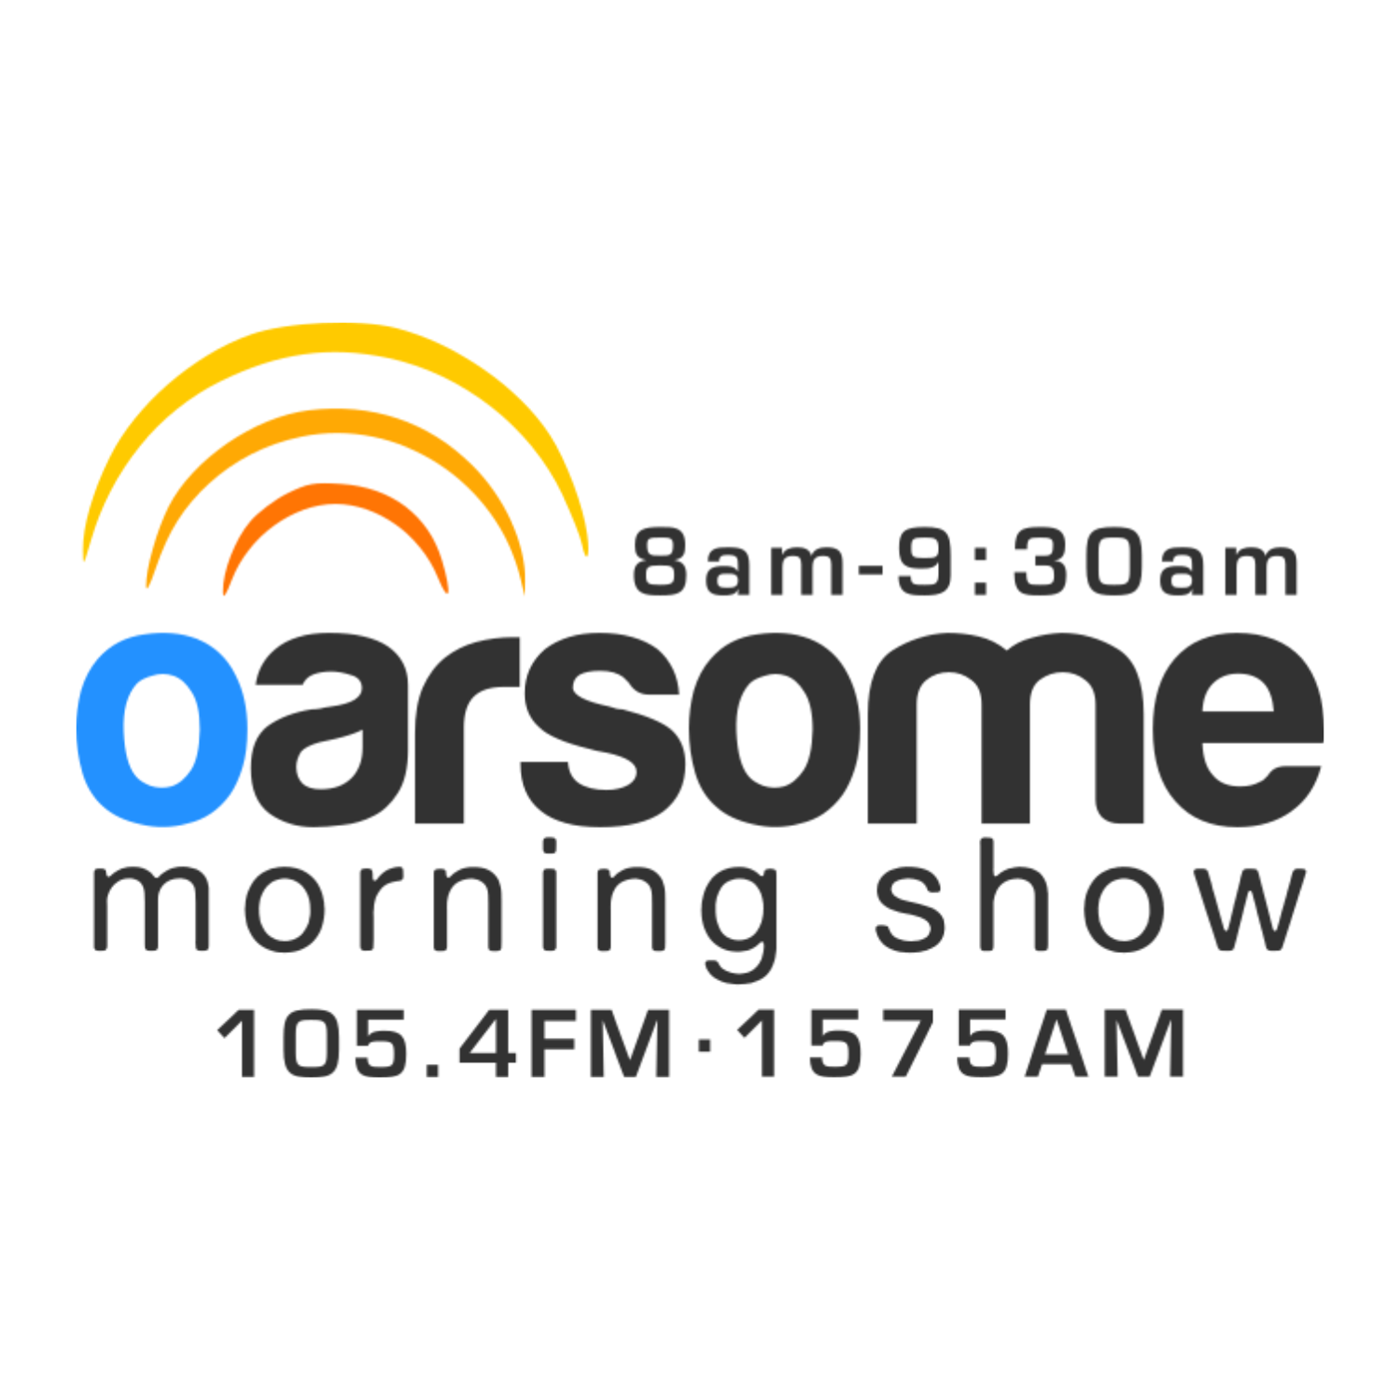 OARsome Morning Show - 19-07-2019 - Renee Hollis - Social History Project